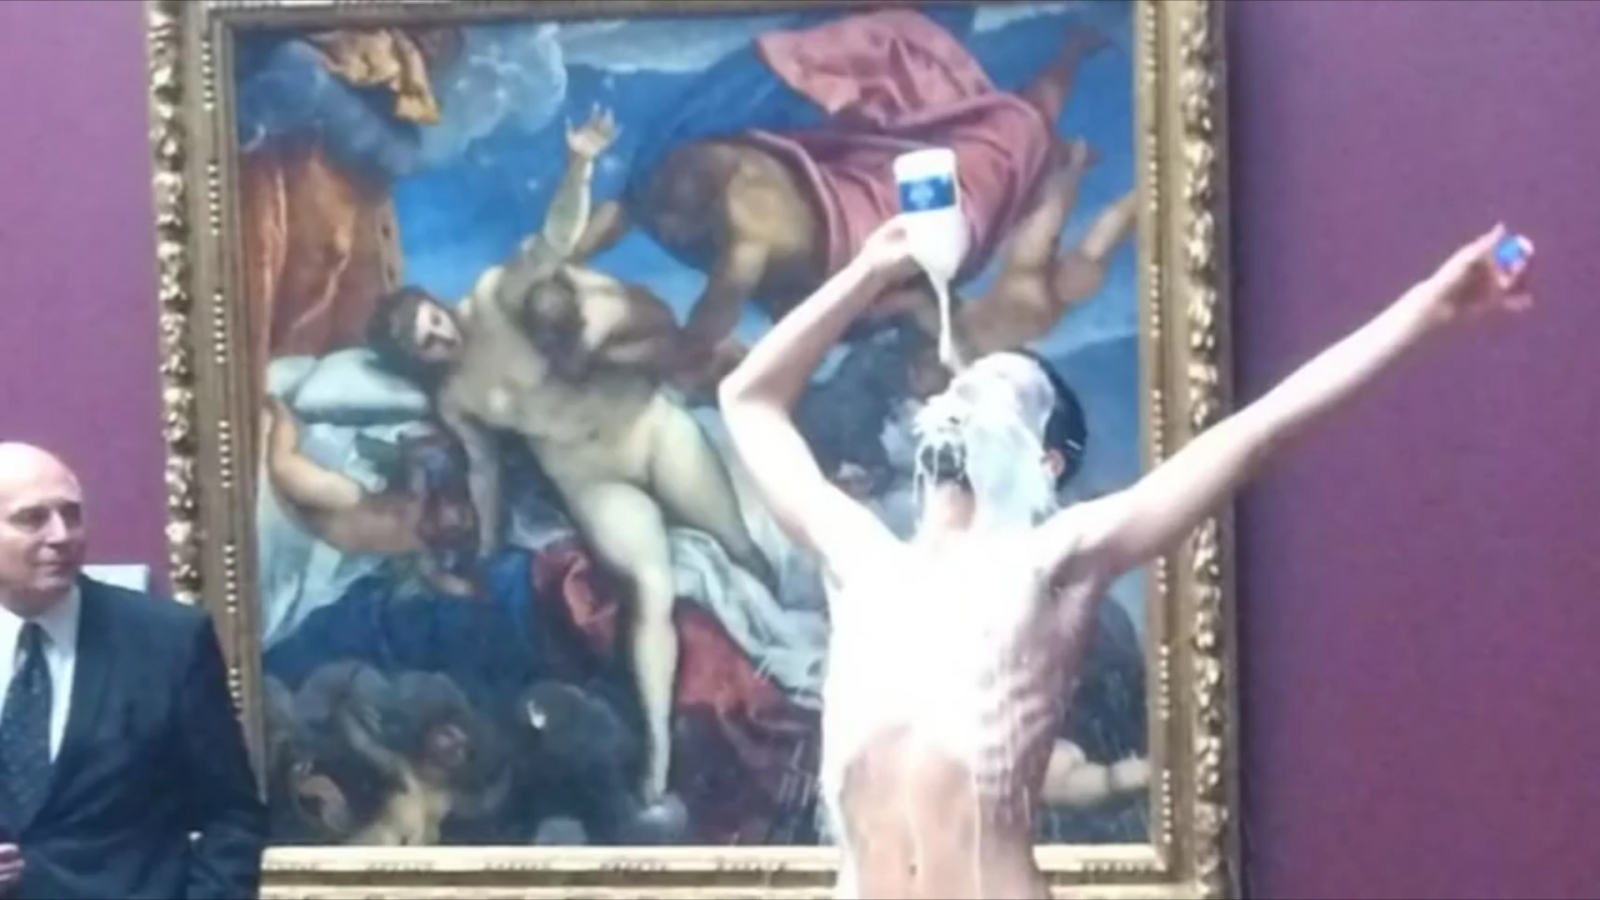 Artist does nude performance at Portrait Gallery